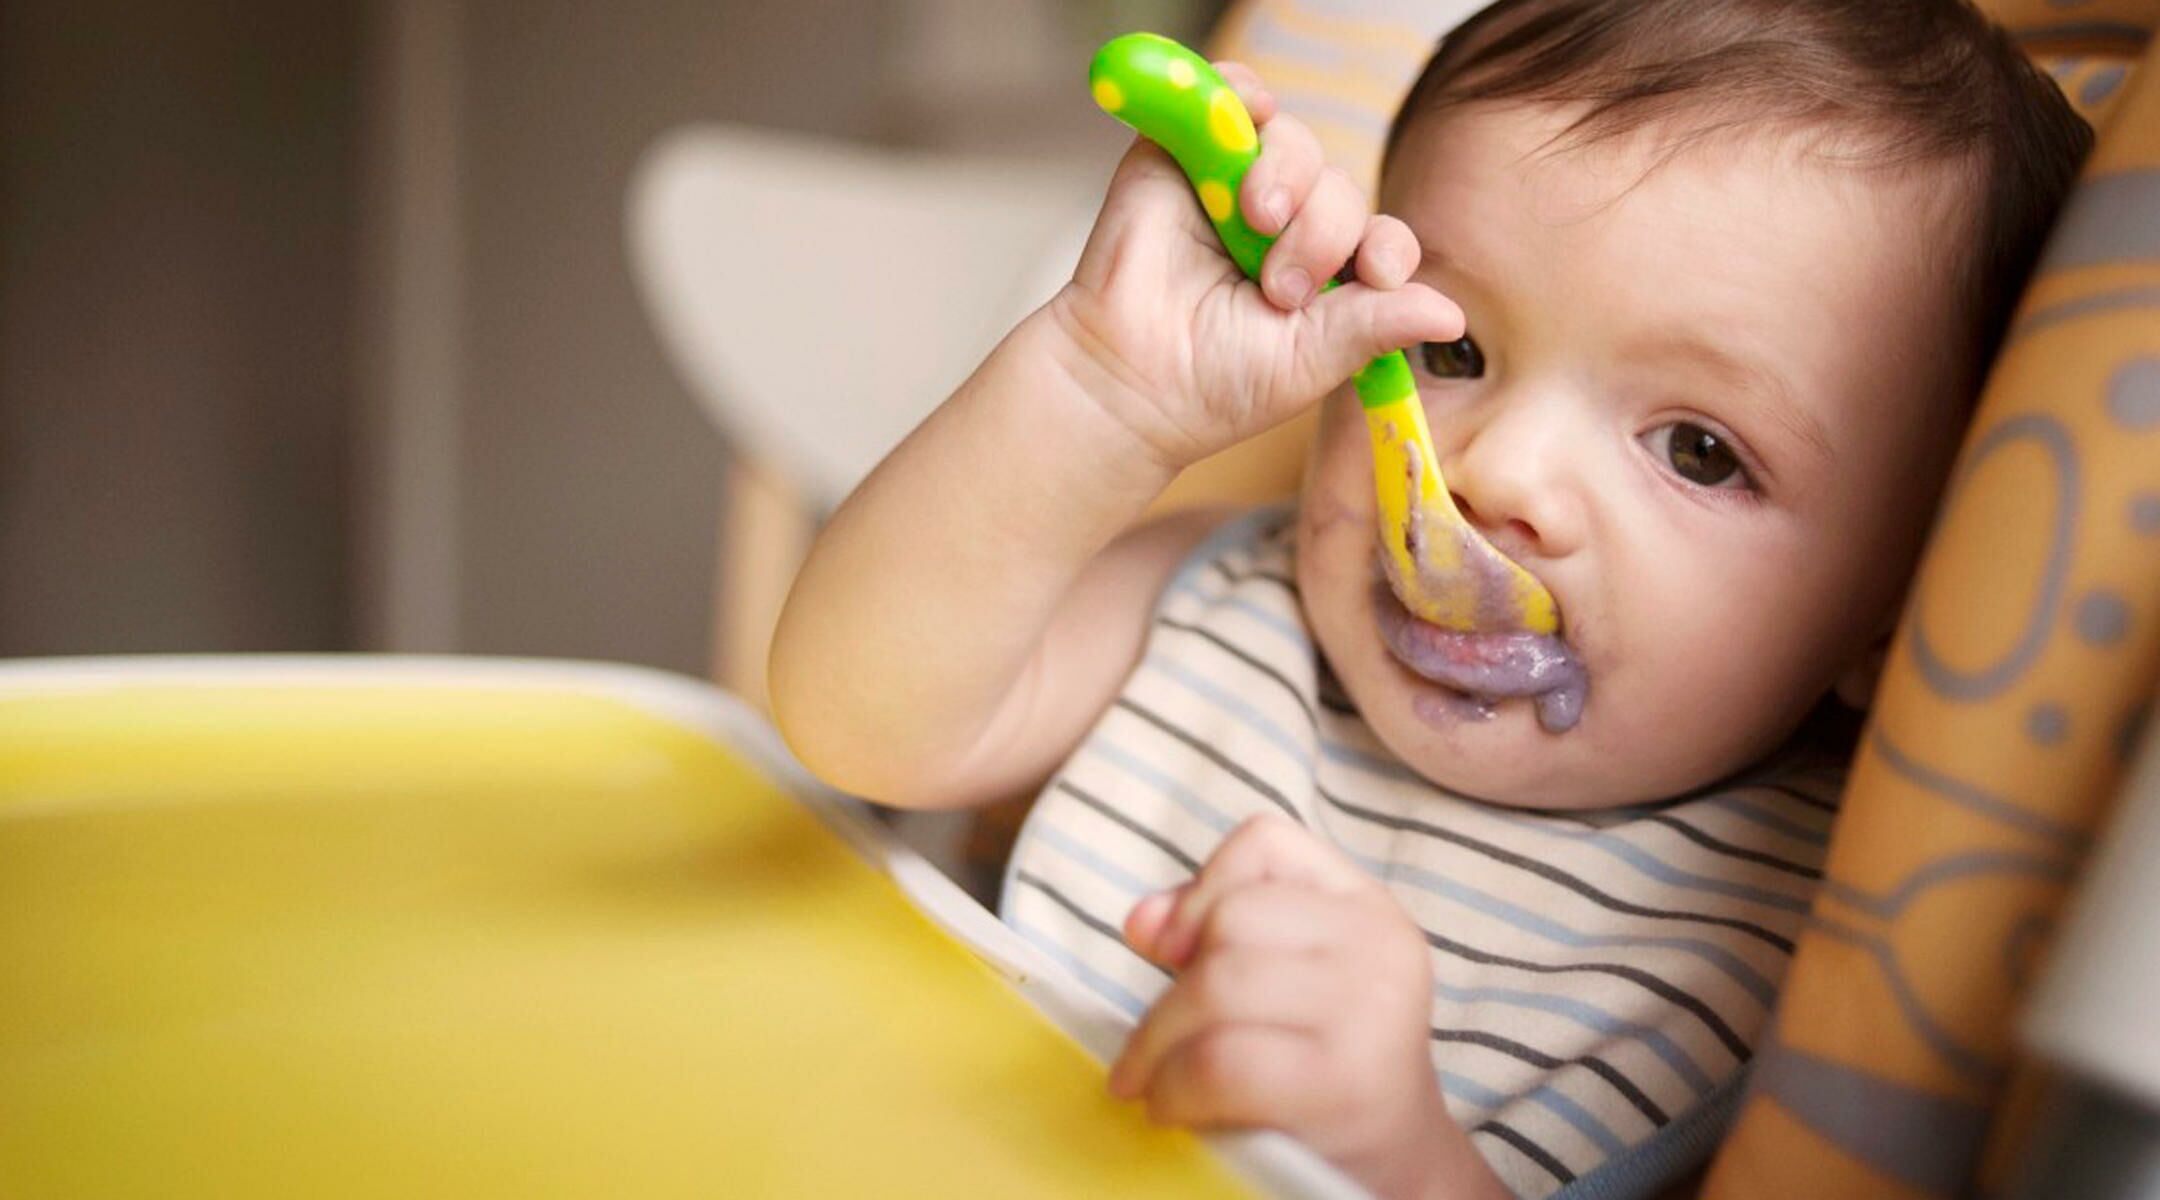 When Should I Give Baby a Spoon?